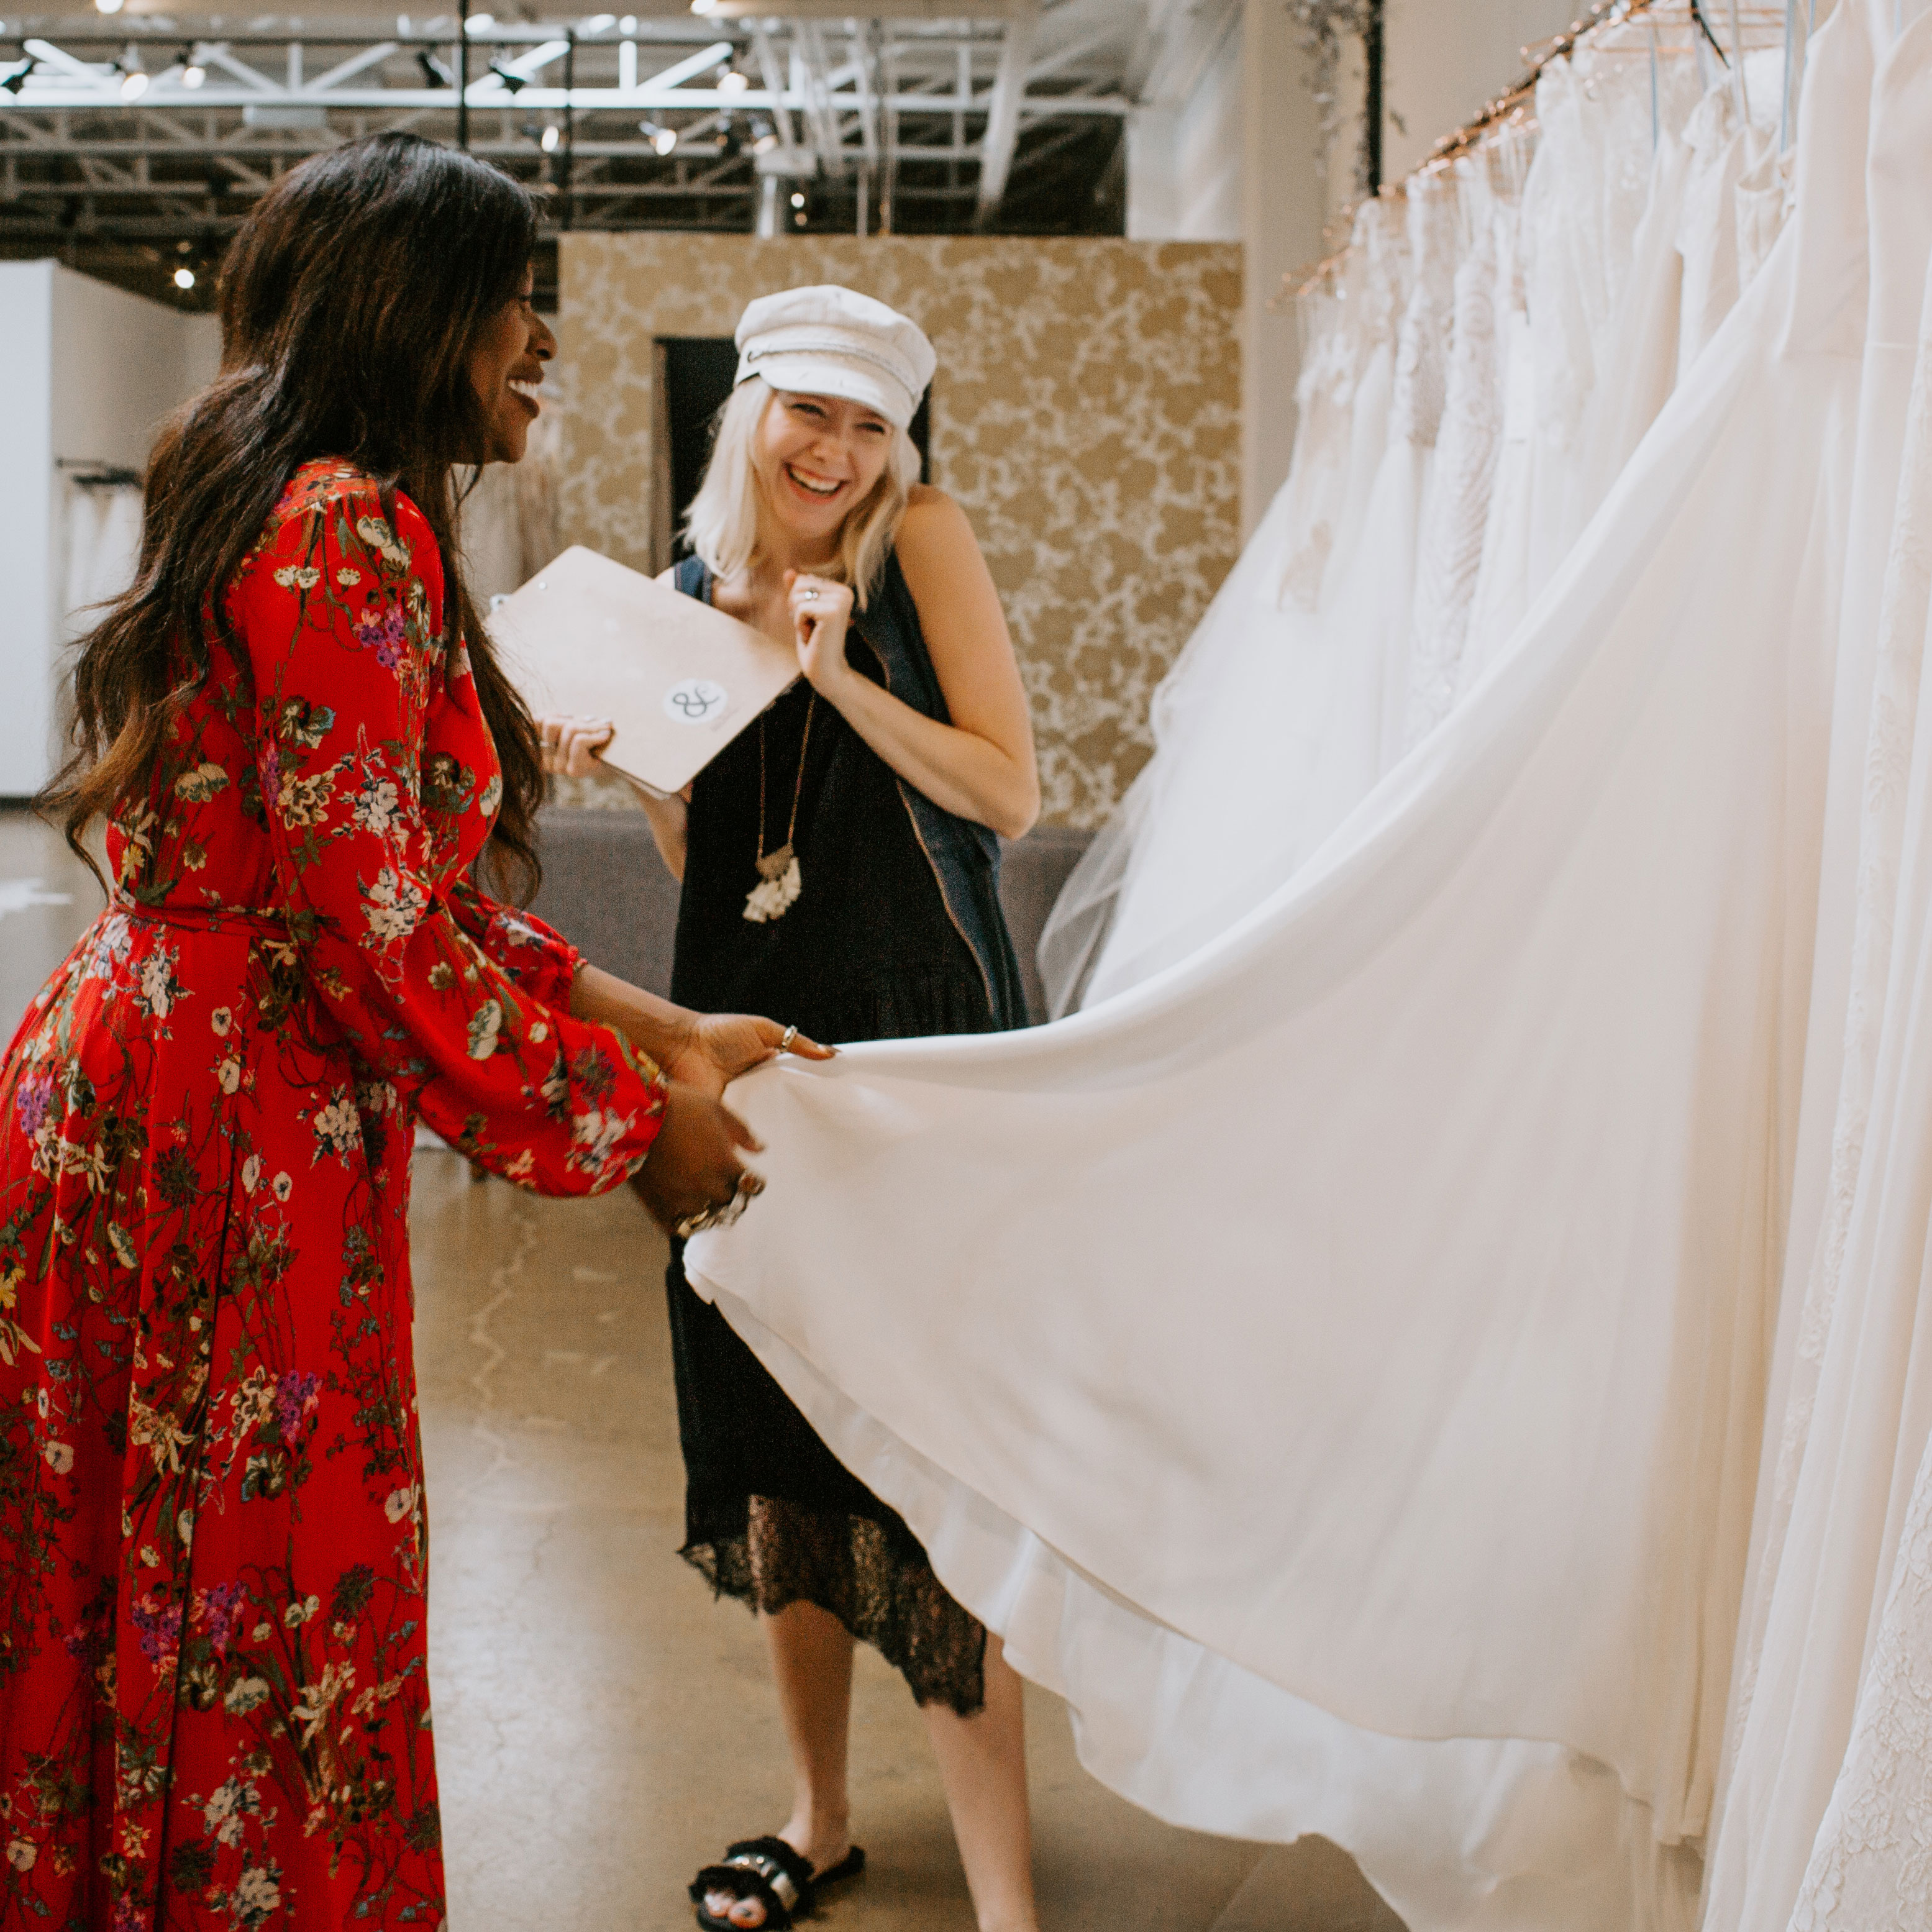 Karis Renee finding the perfect wedding dress